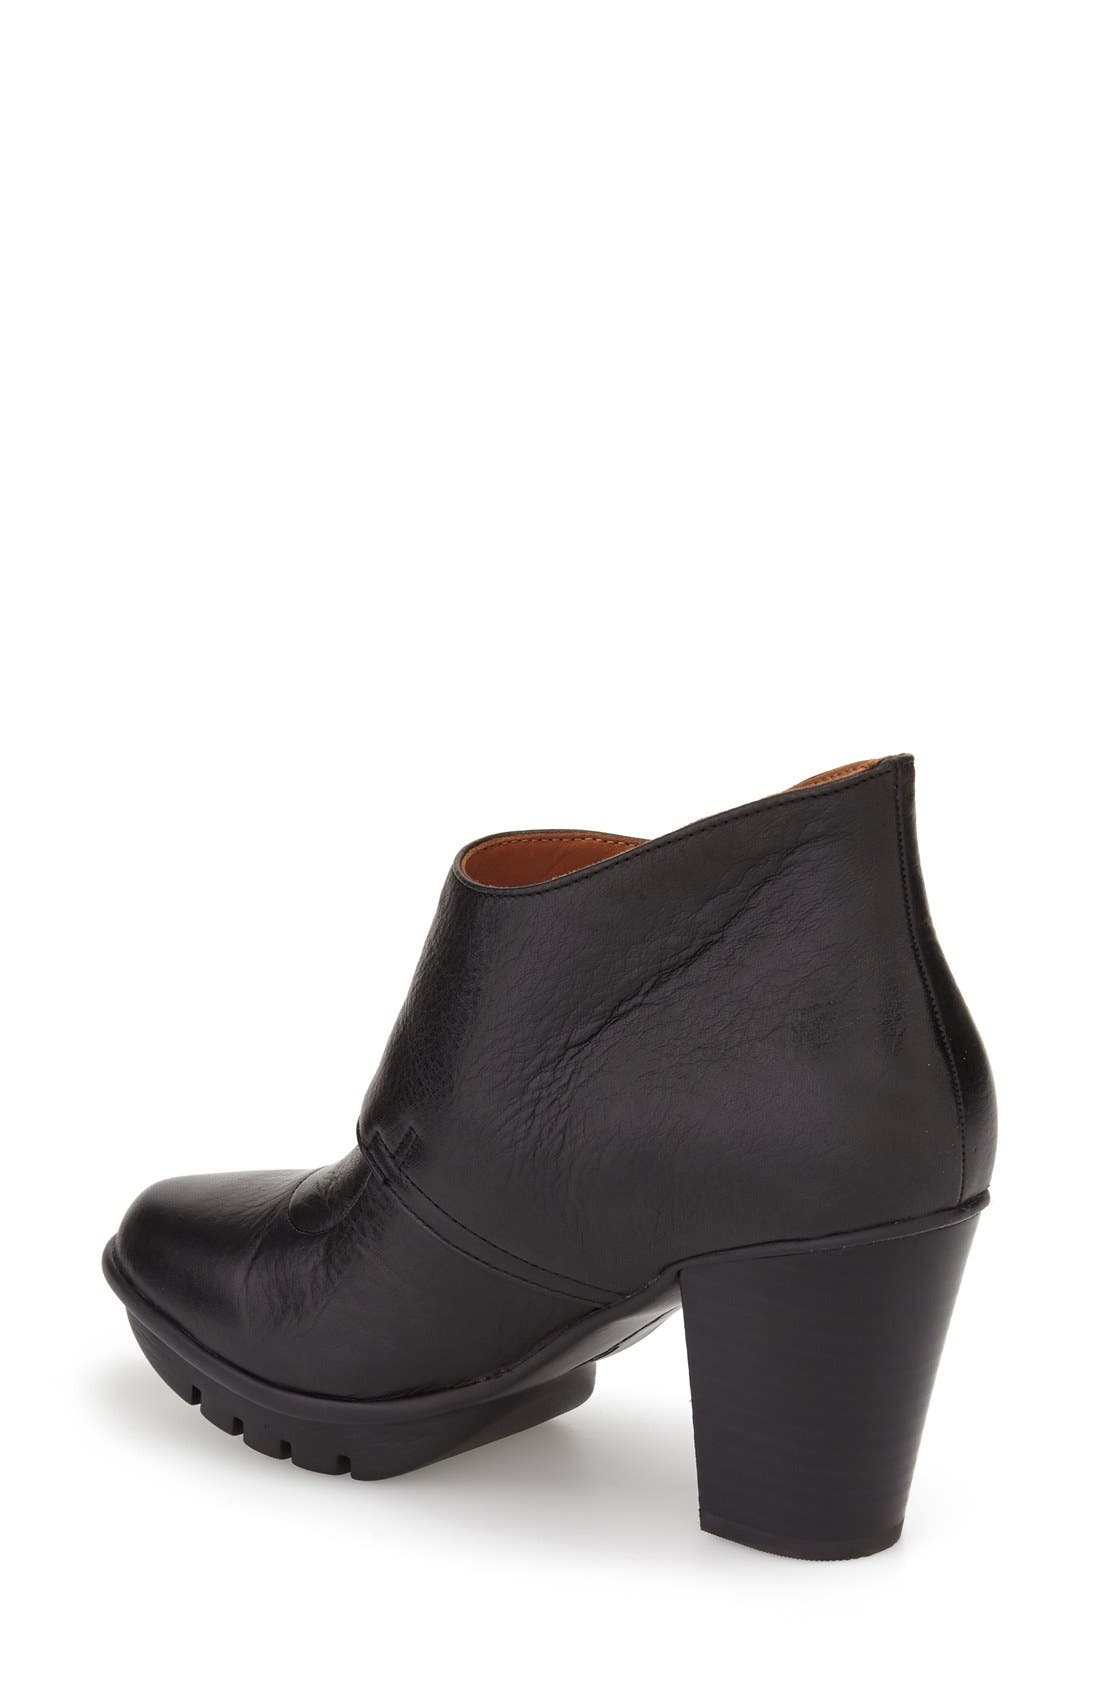 'Eviemae' Platform Bootie,                             Alternate thumbnail 3, color,                             001